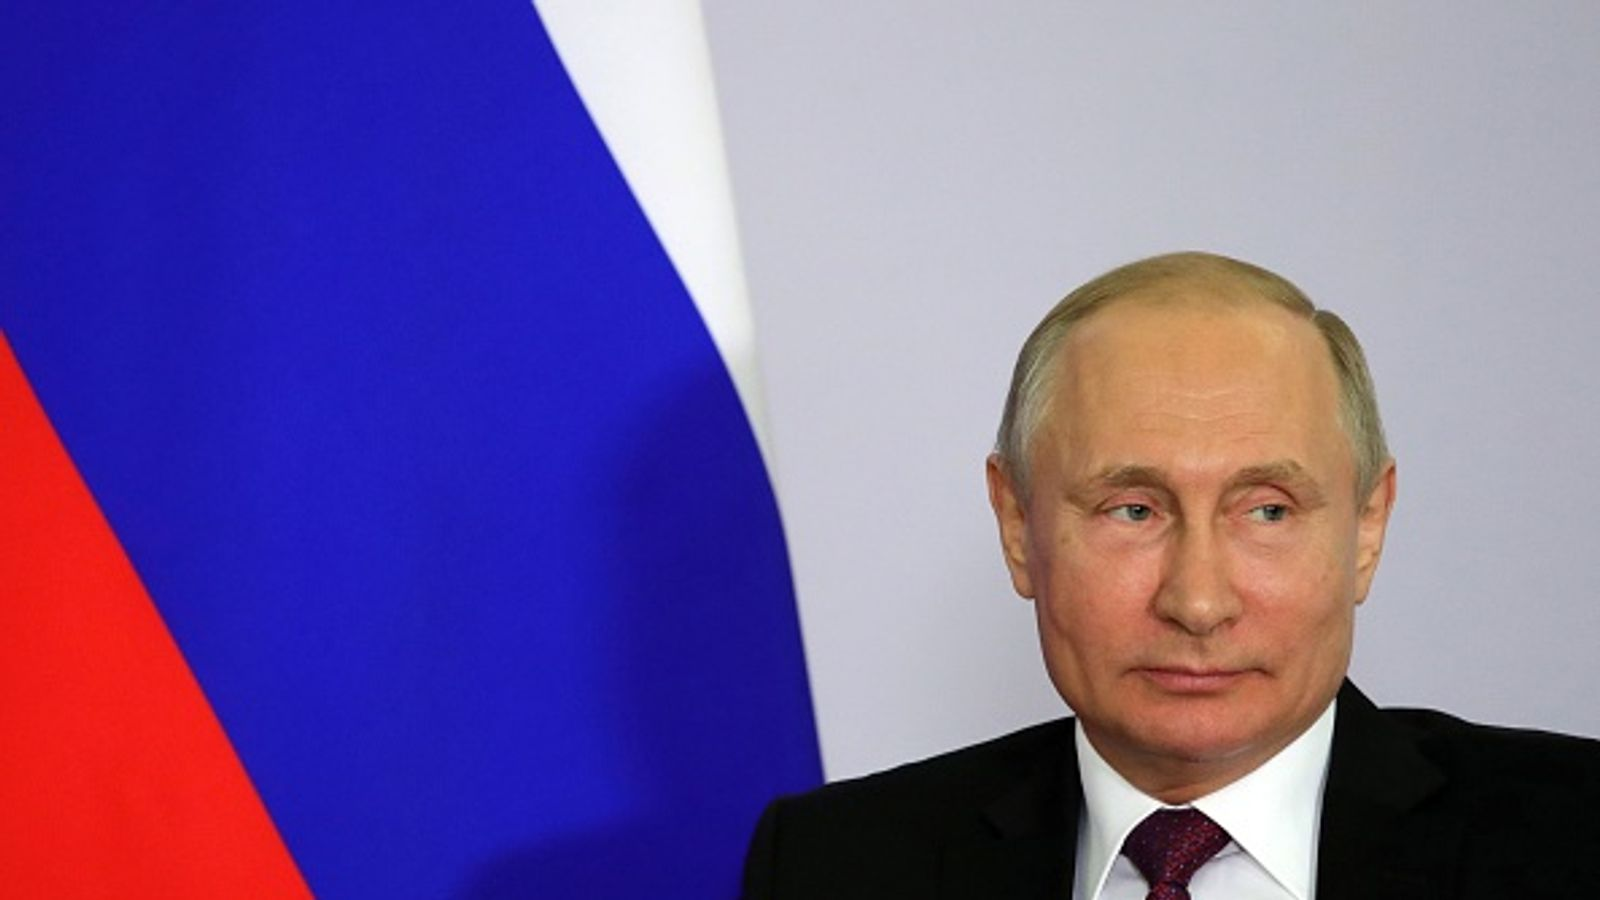 MPs' scathing report says UK is 'turning blind eye' to Putin's 'dirty money'